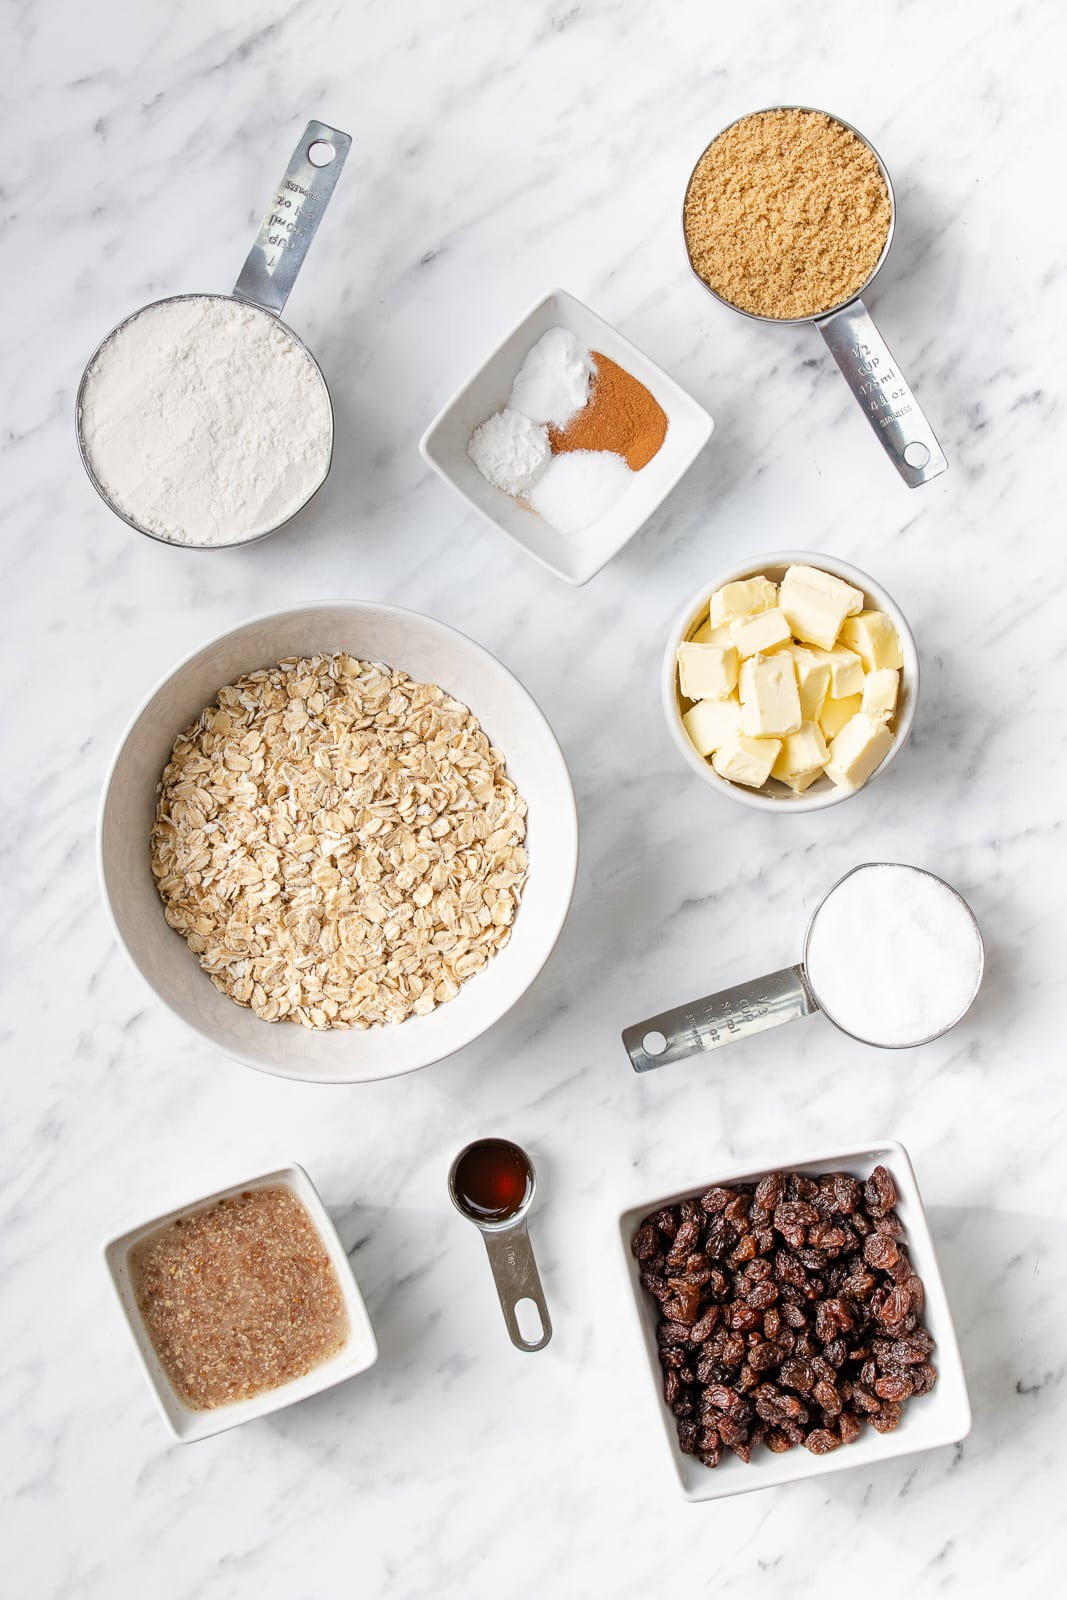 Bowls and measuring cups of brown sugar, caster sugar, gluten-free flour, butter, oats, and raisins